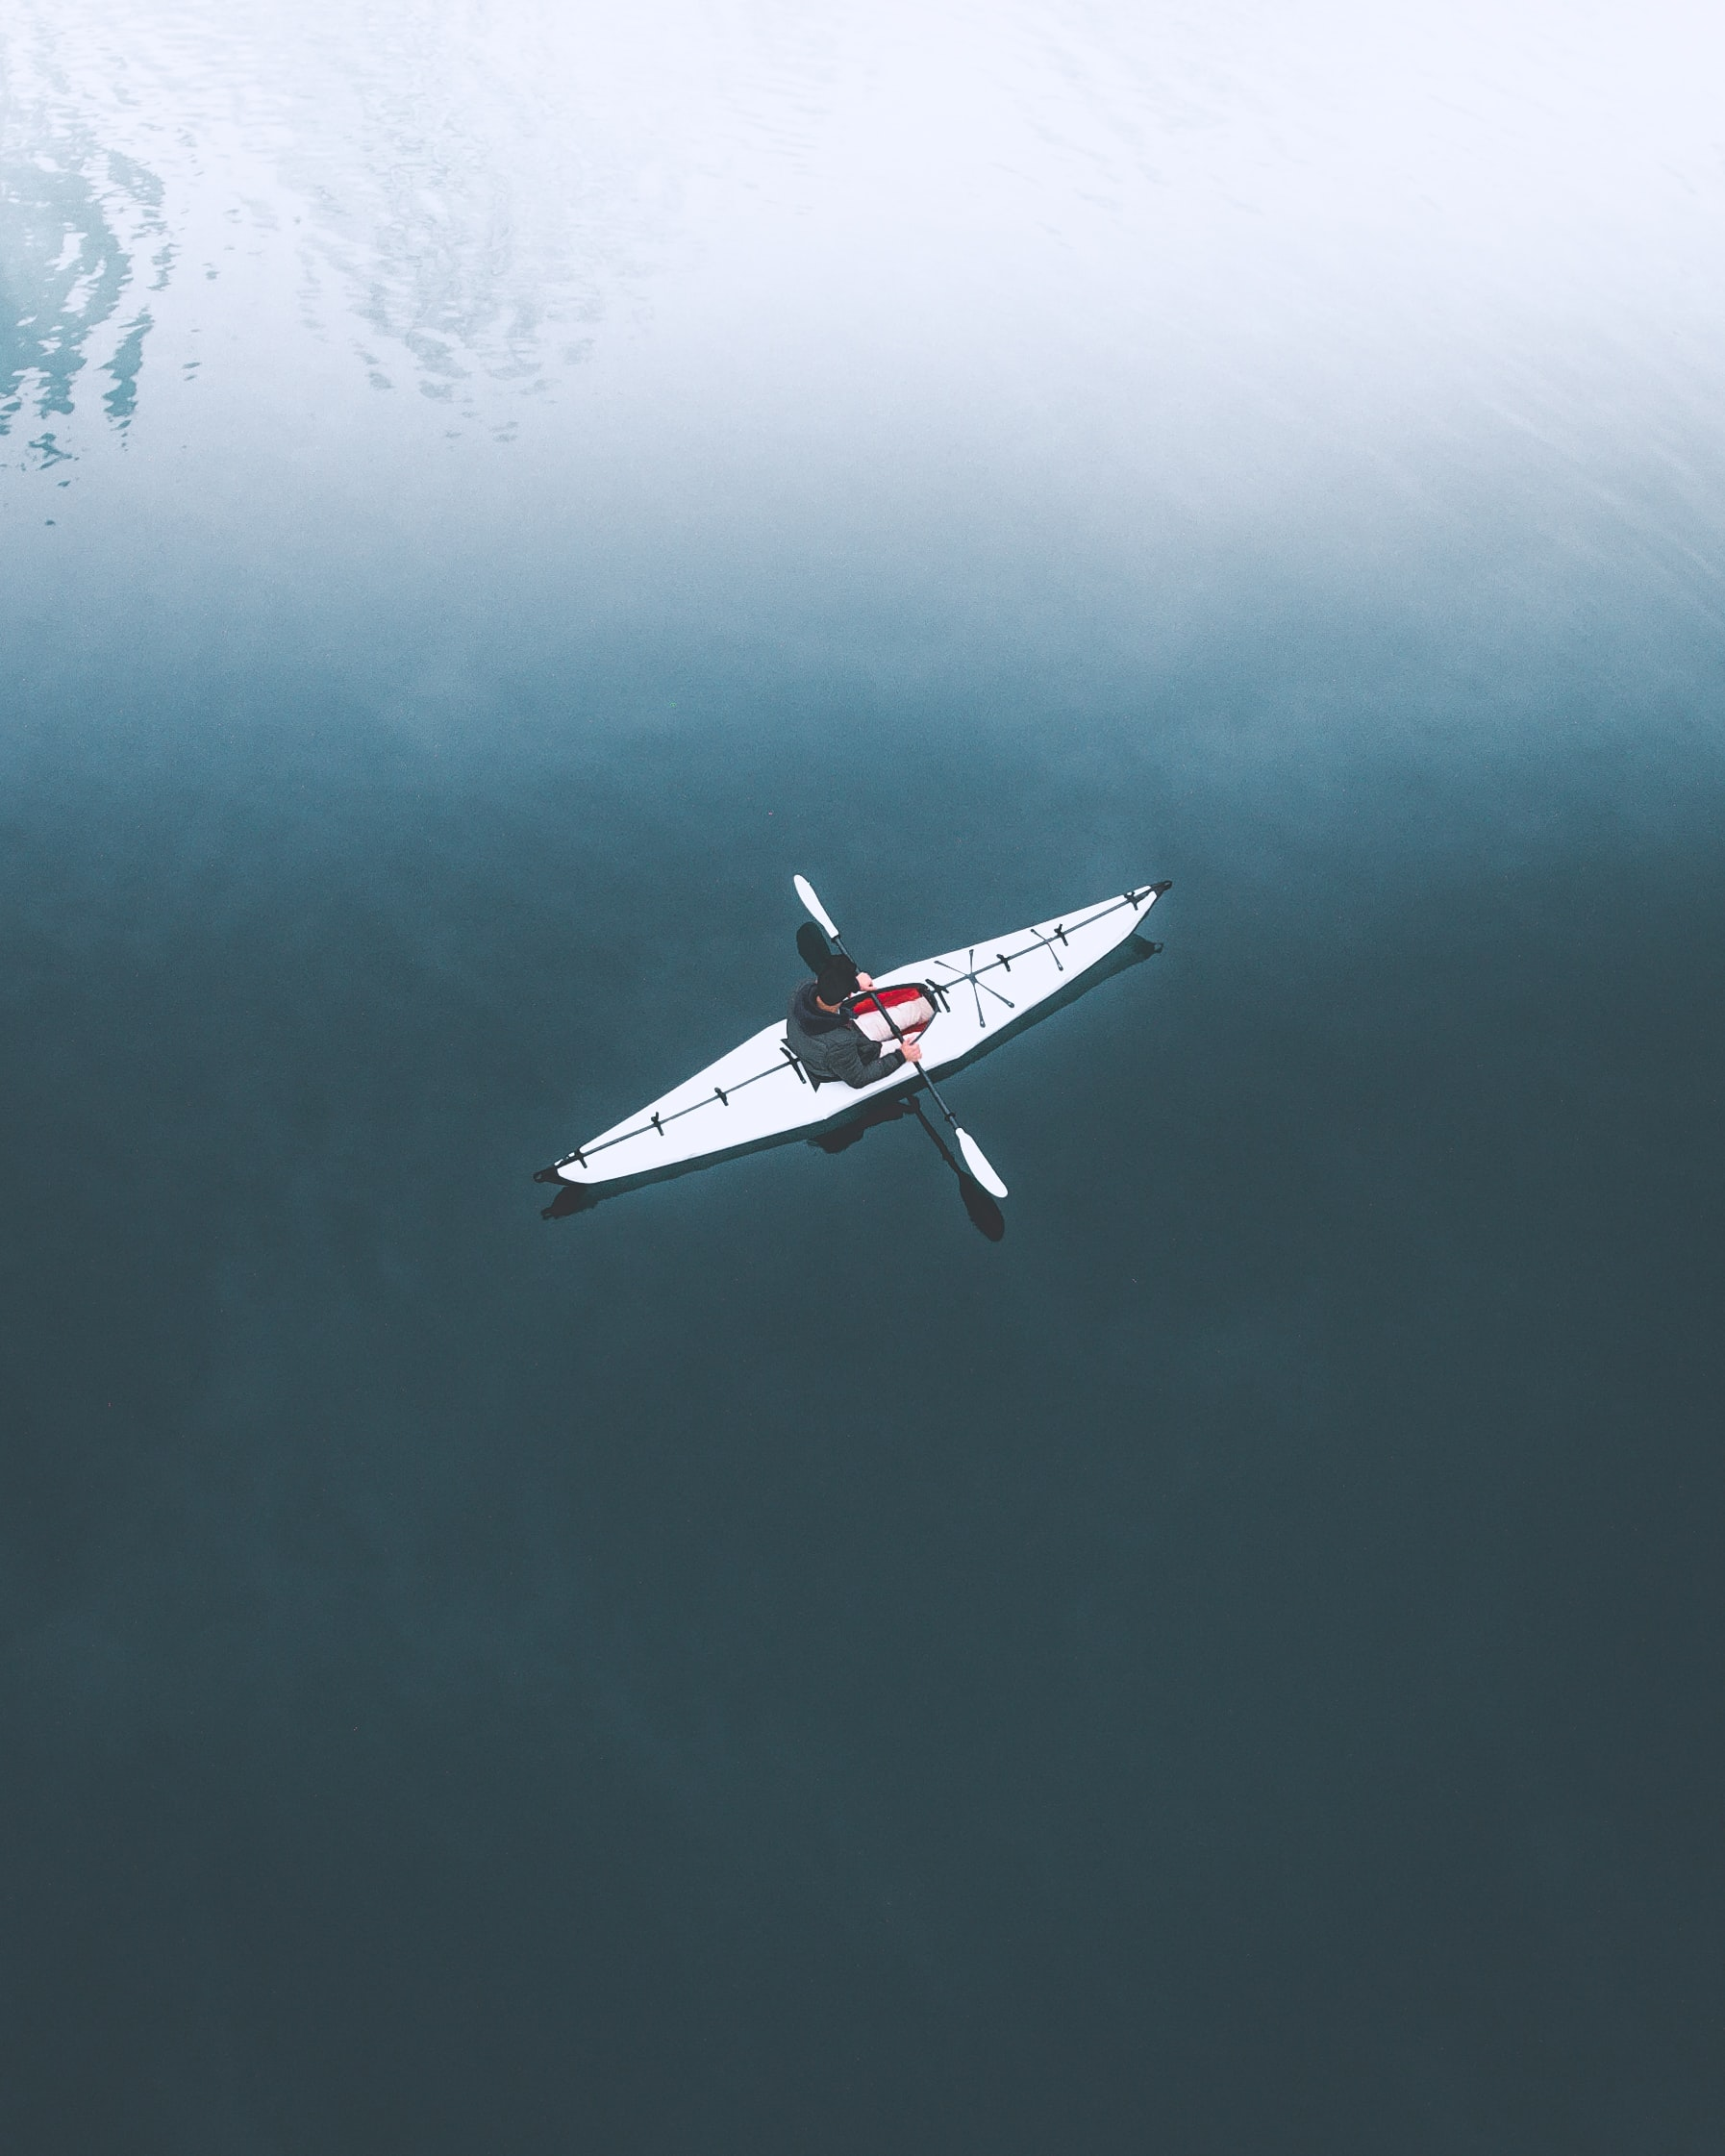 Drone shot of a lone kayaker in the water.